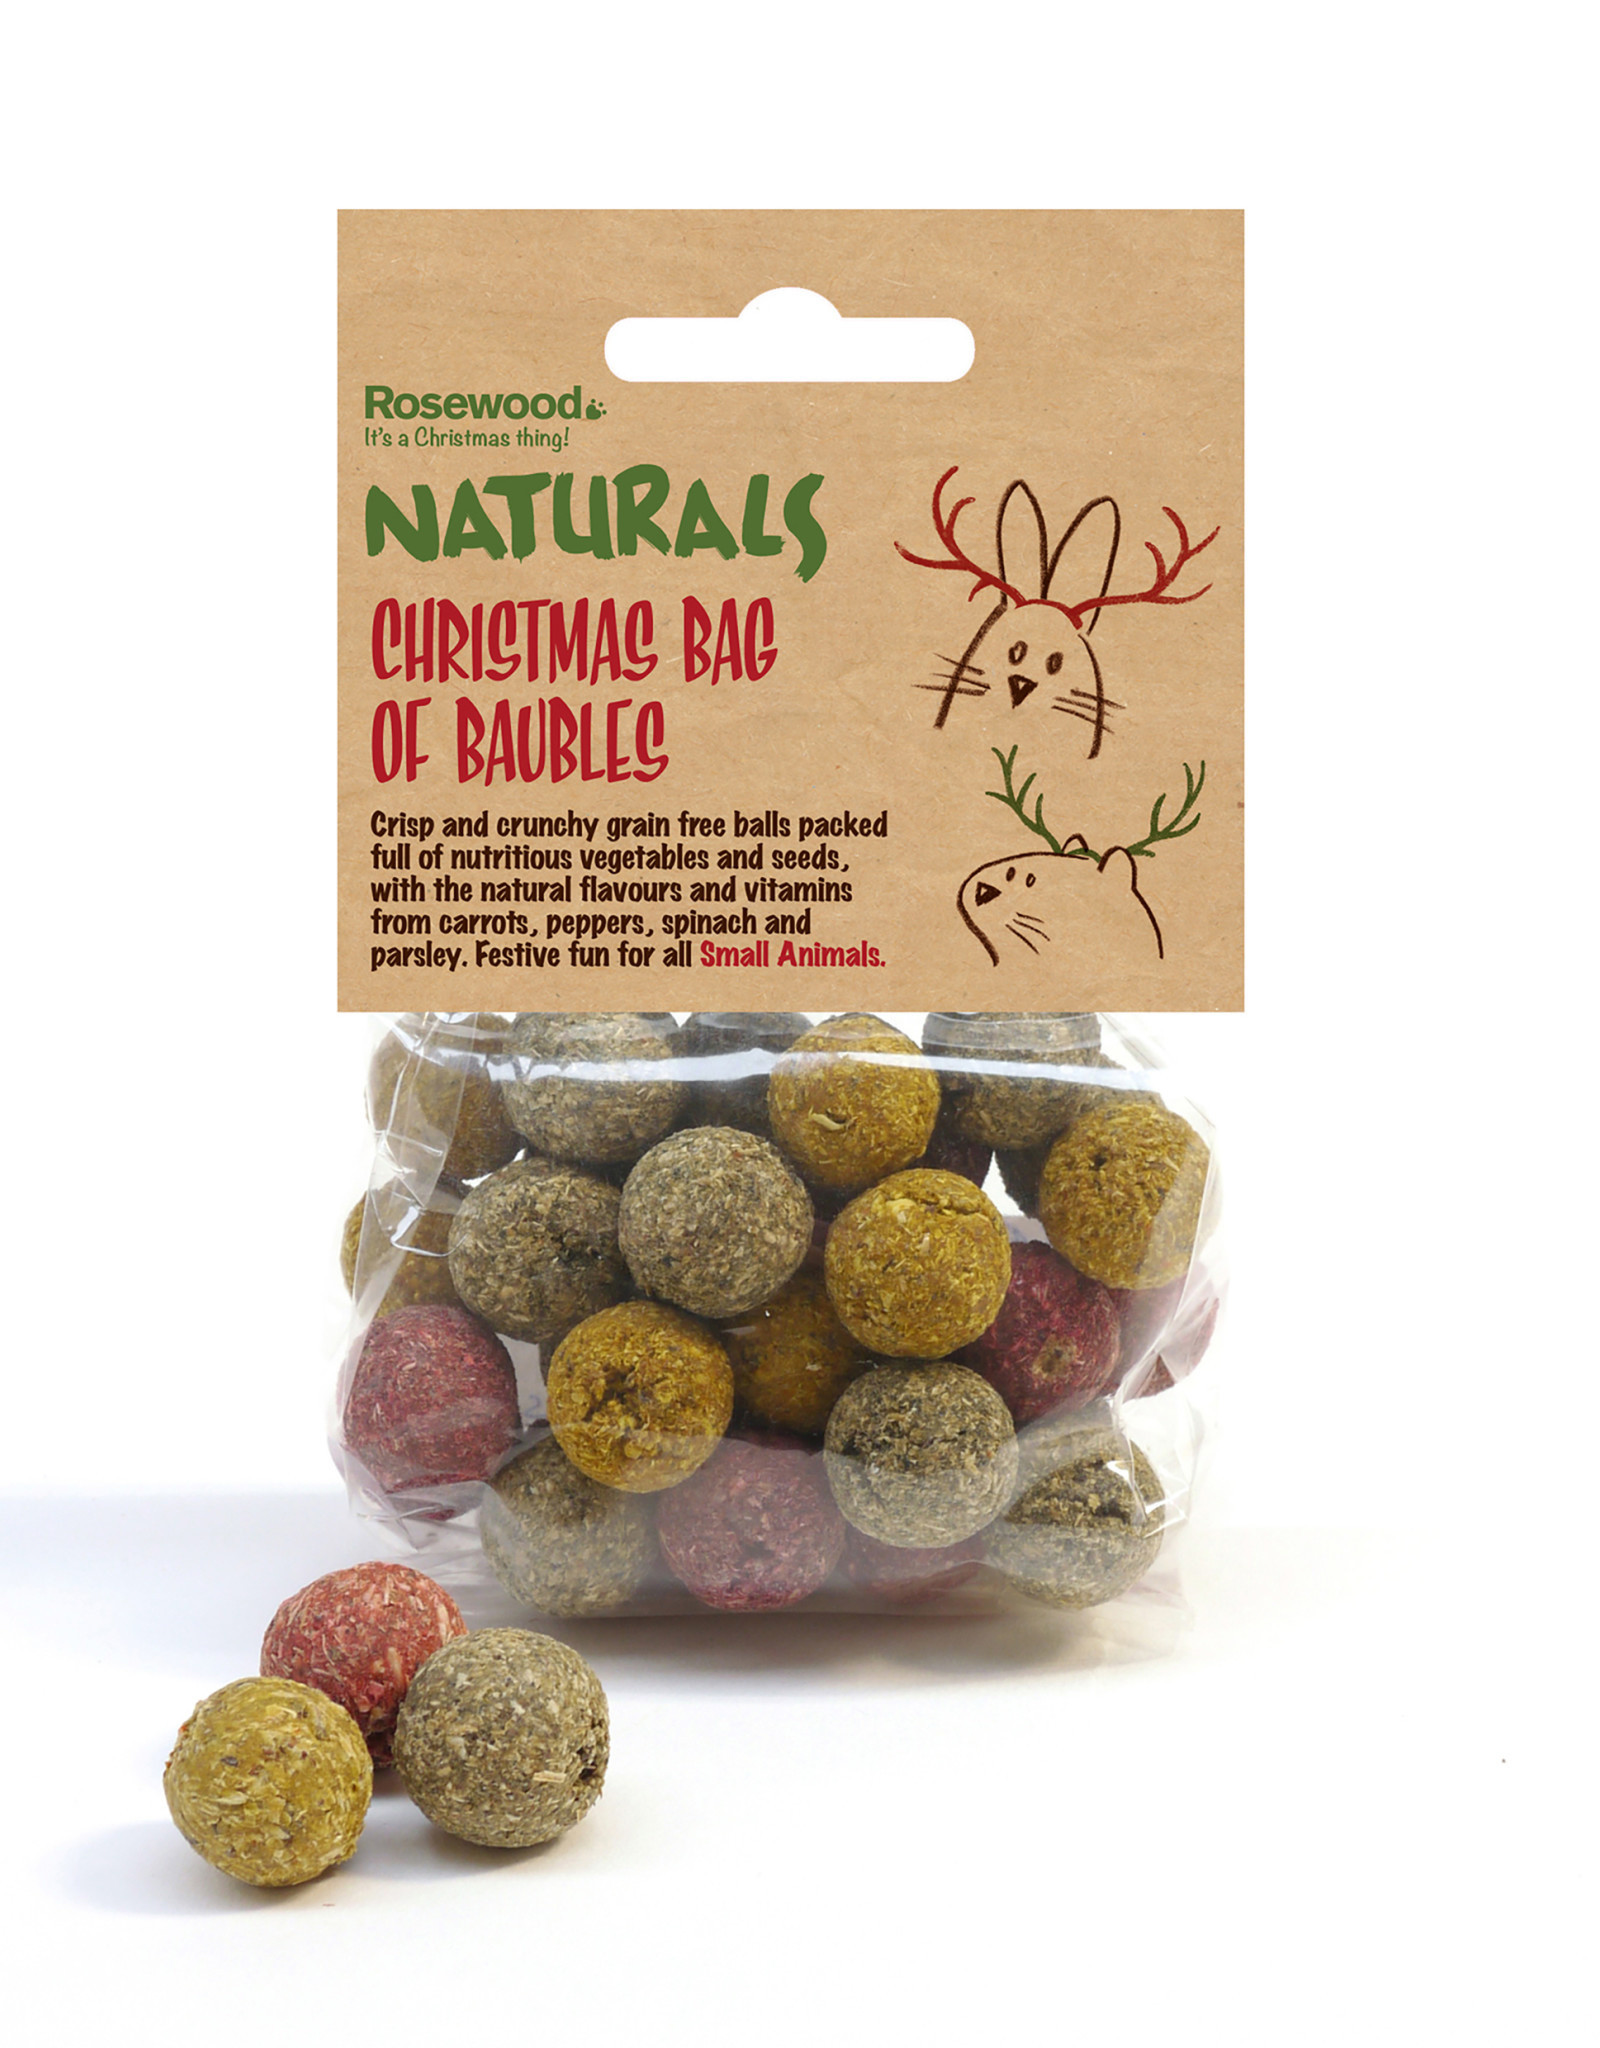 Rosewood Christmas Naturals Bag of Baubles Small Animal Treats, 100g